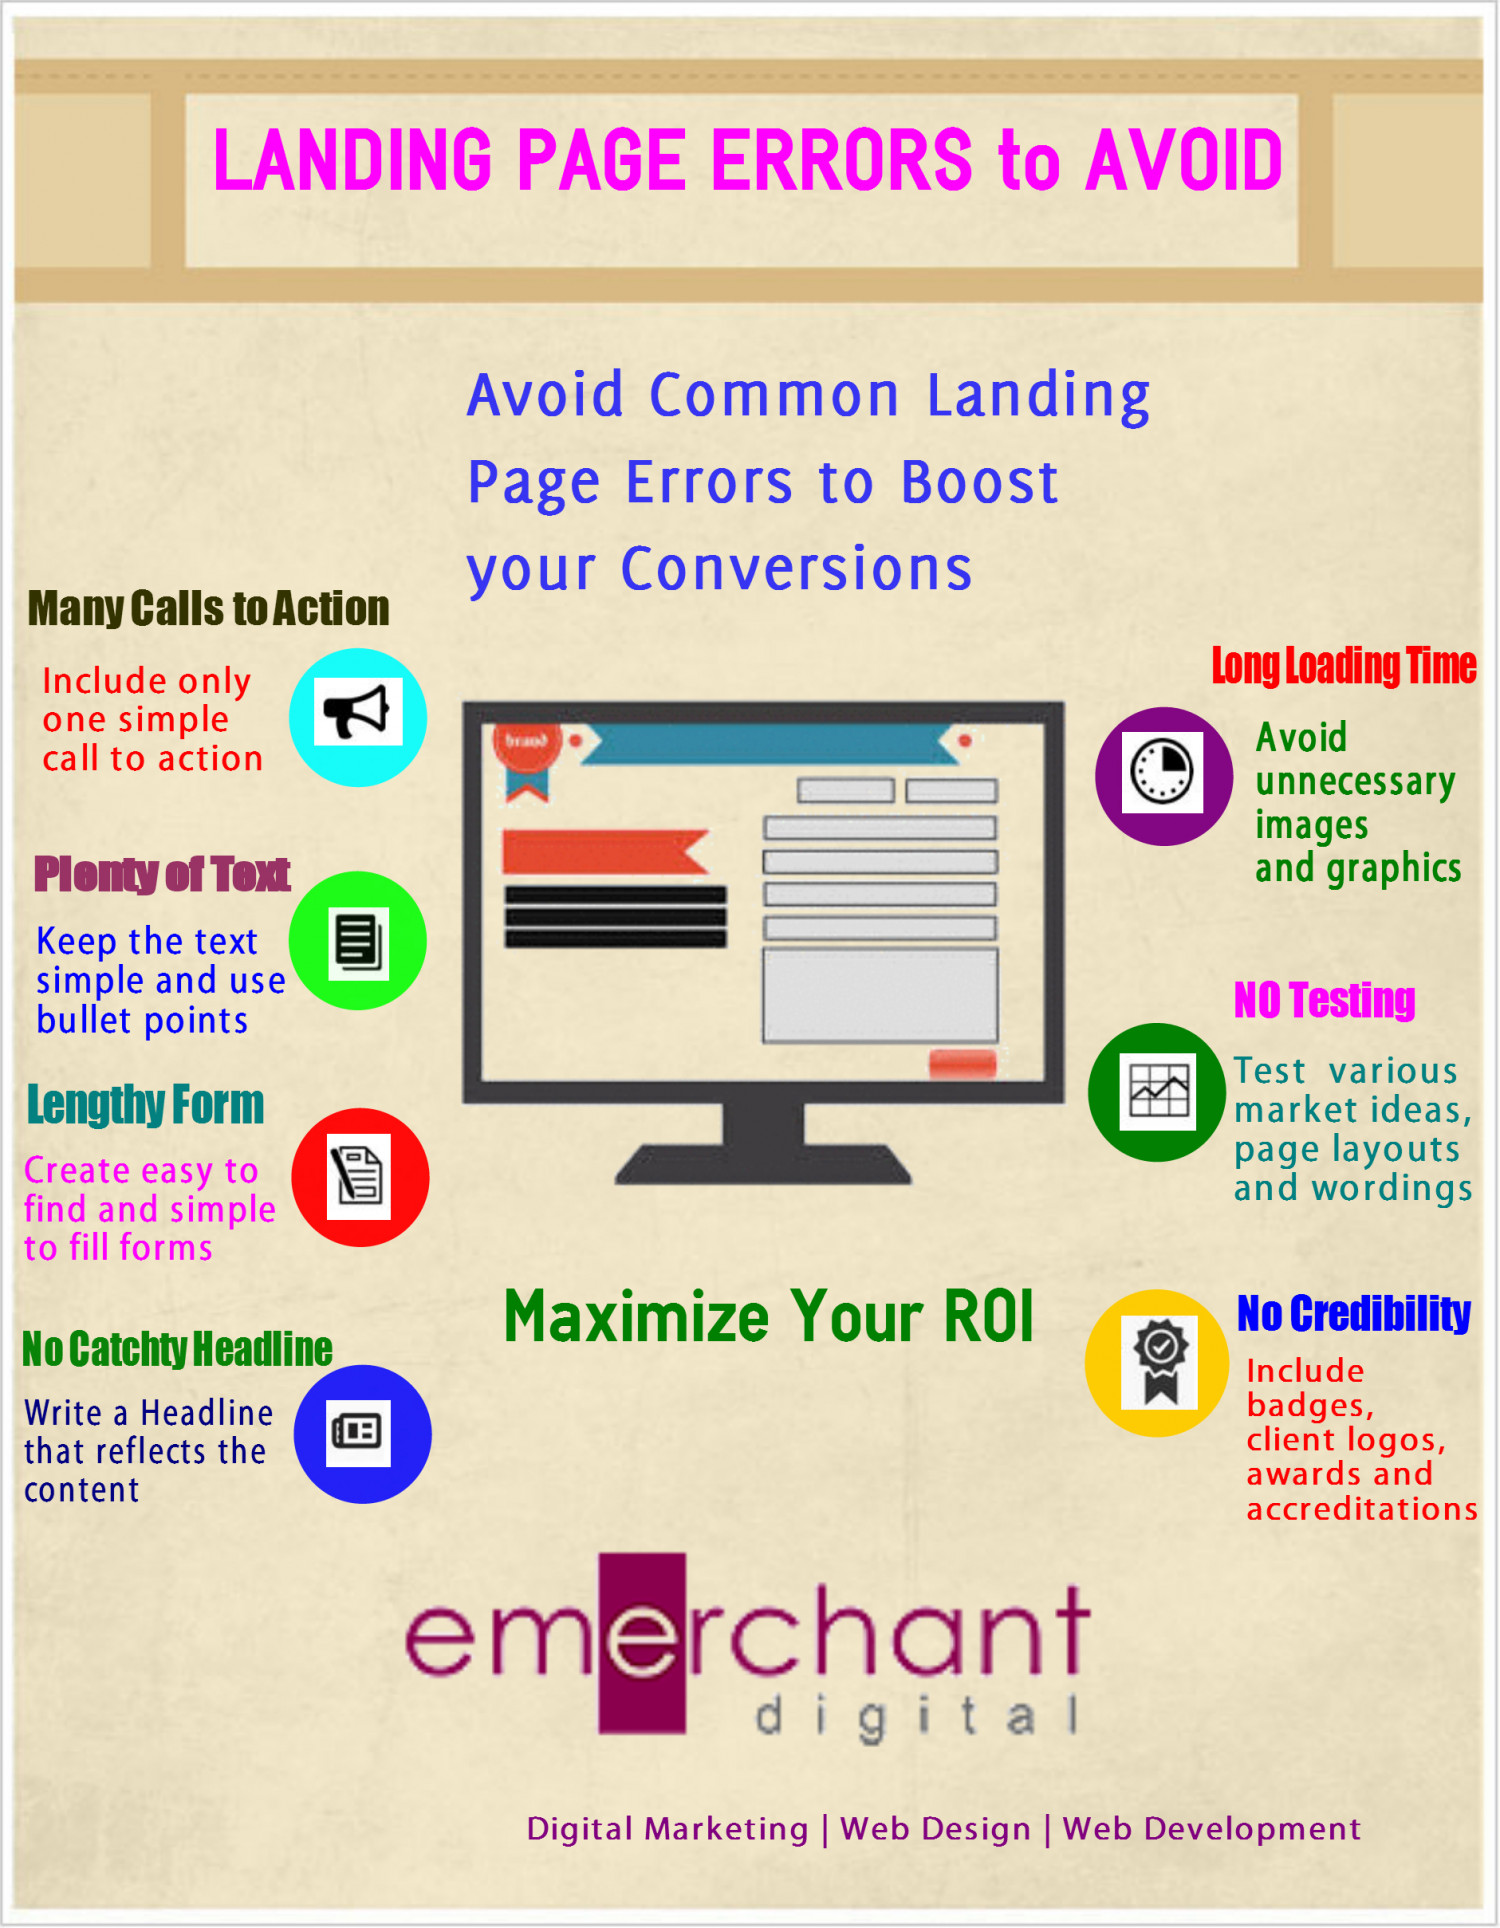 How to Build a High Converting Landing Pge | Visual.ly